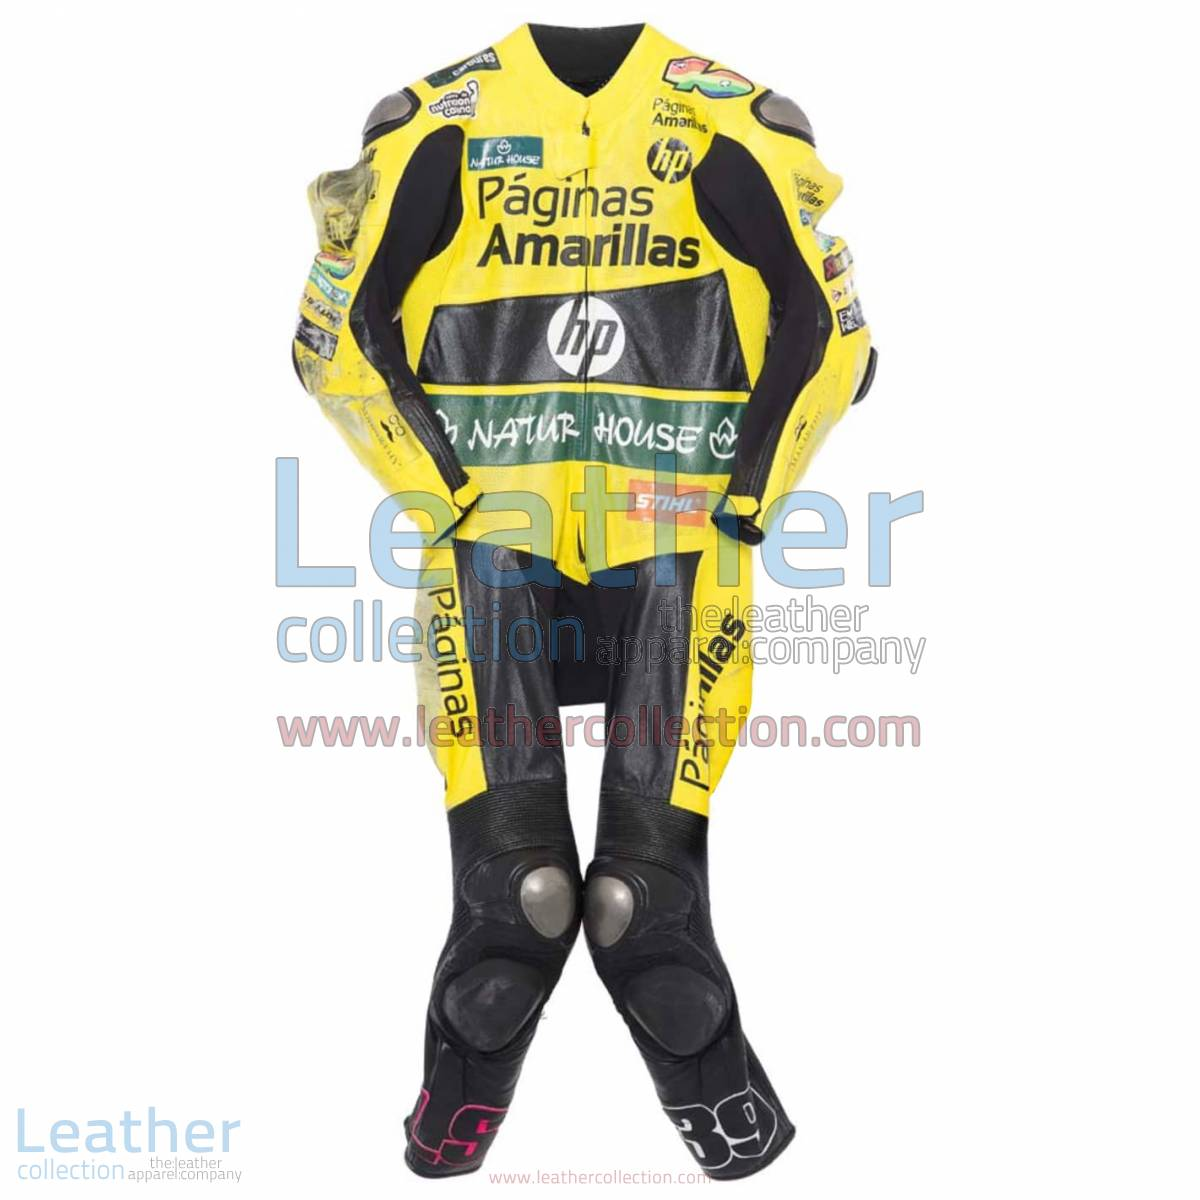 Luis Salom 2014 Motorcycle Leathers | motorcycle leathers